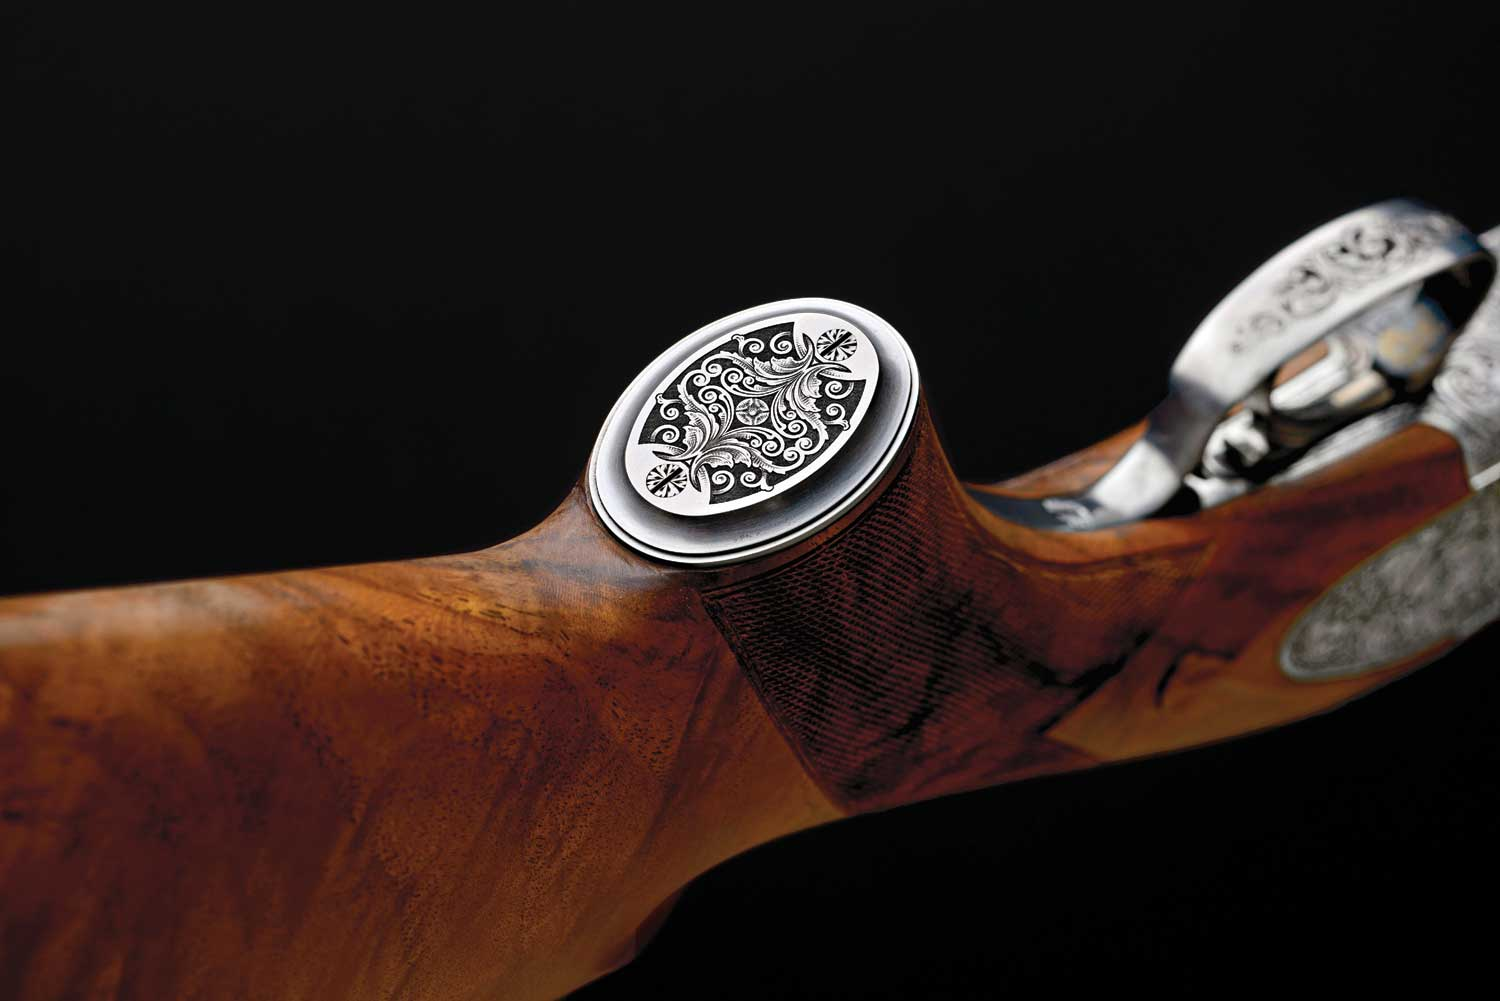 Browning B15 over/under shotgun engraving